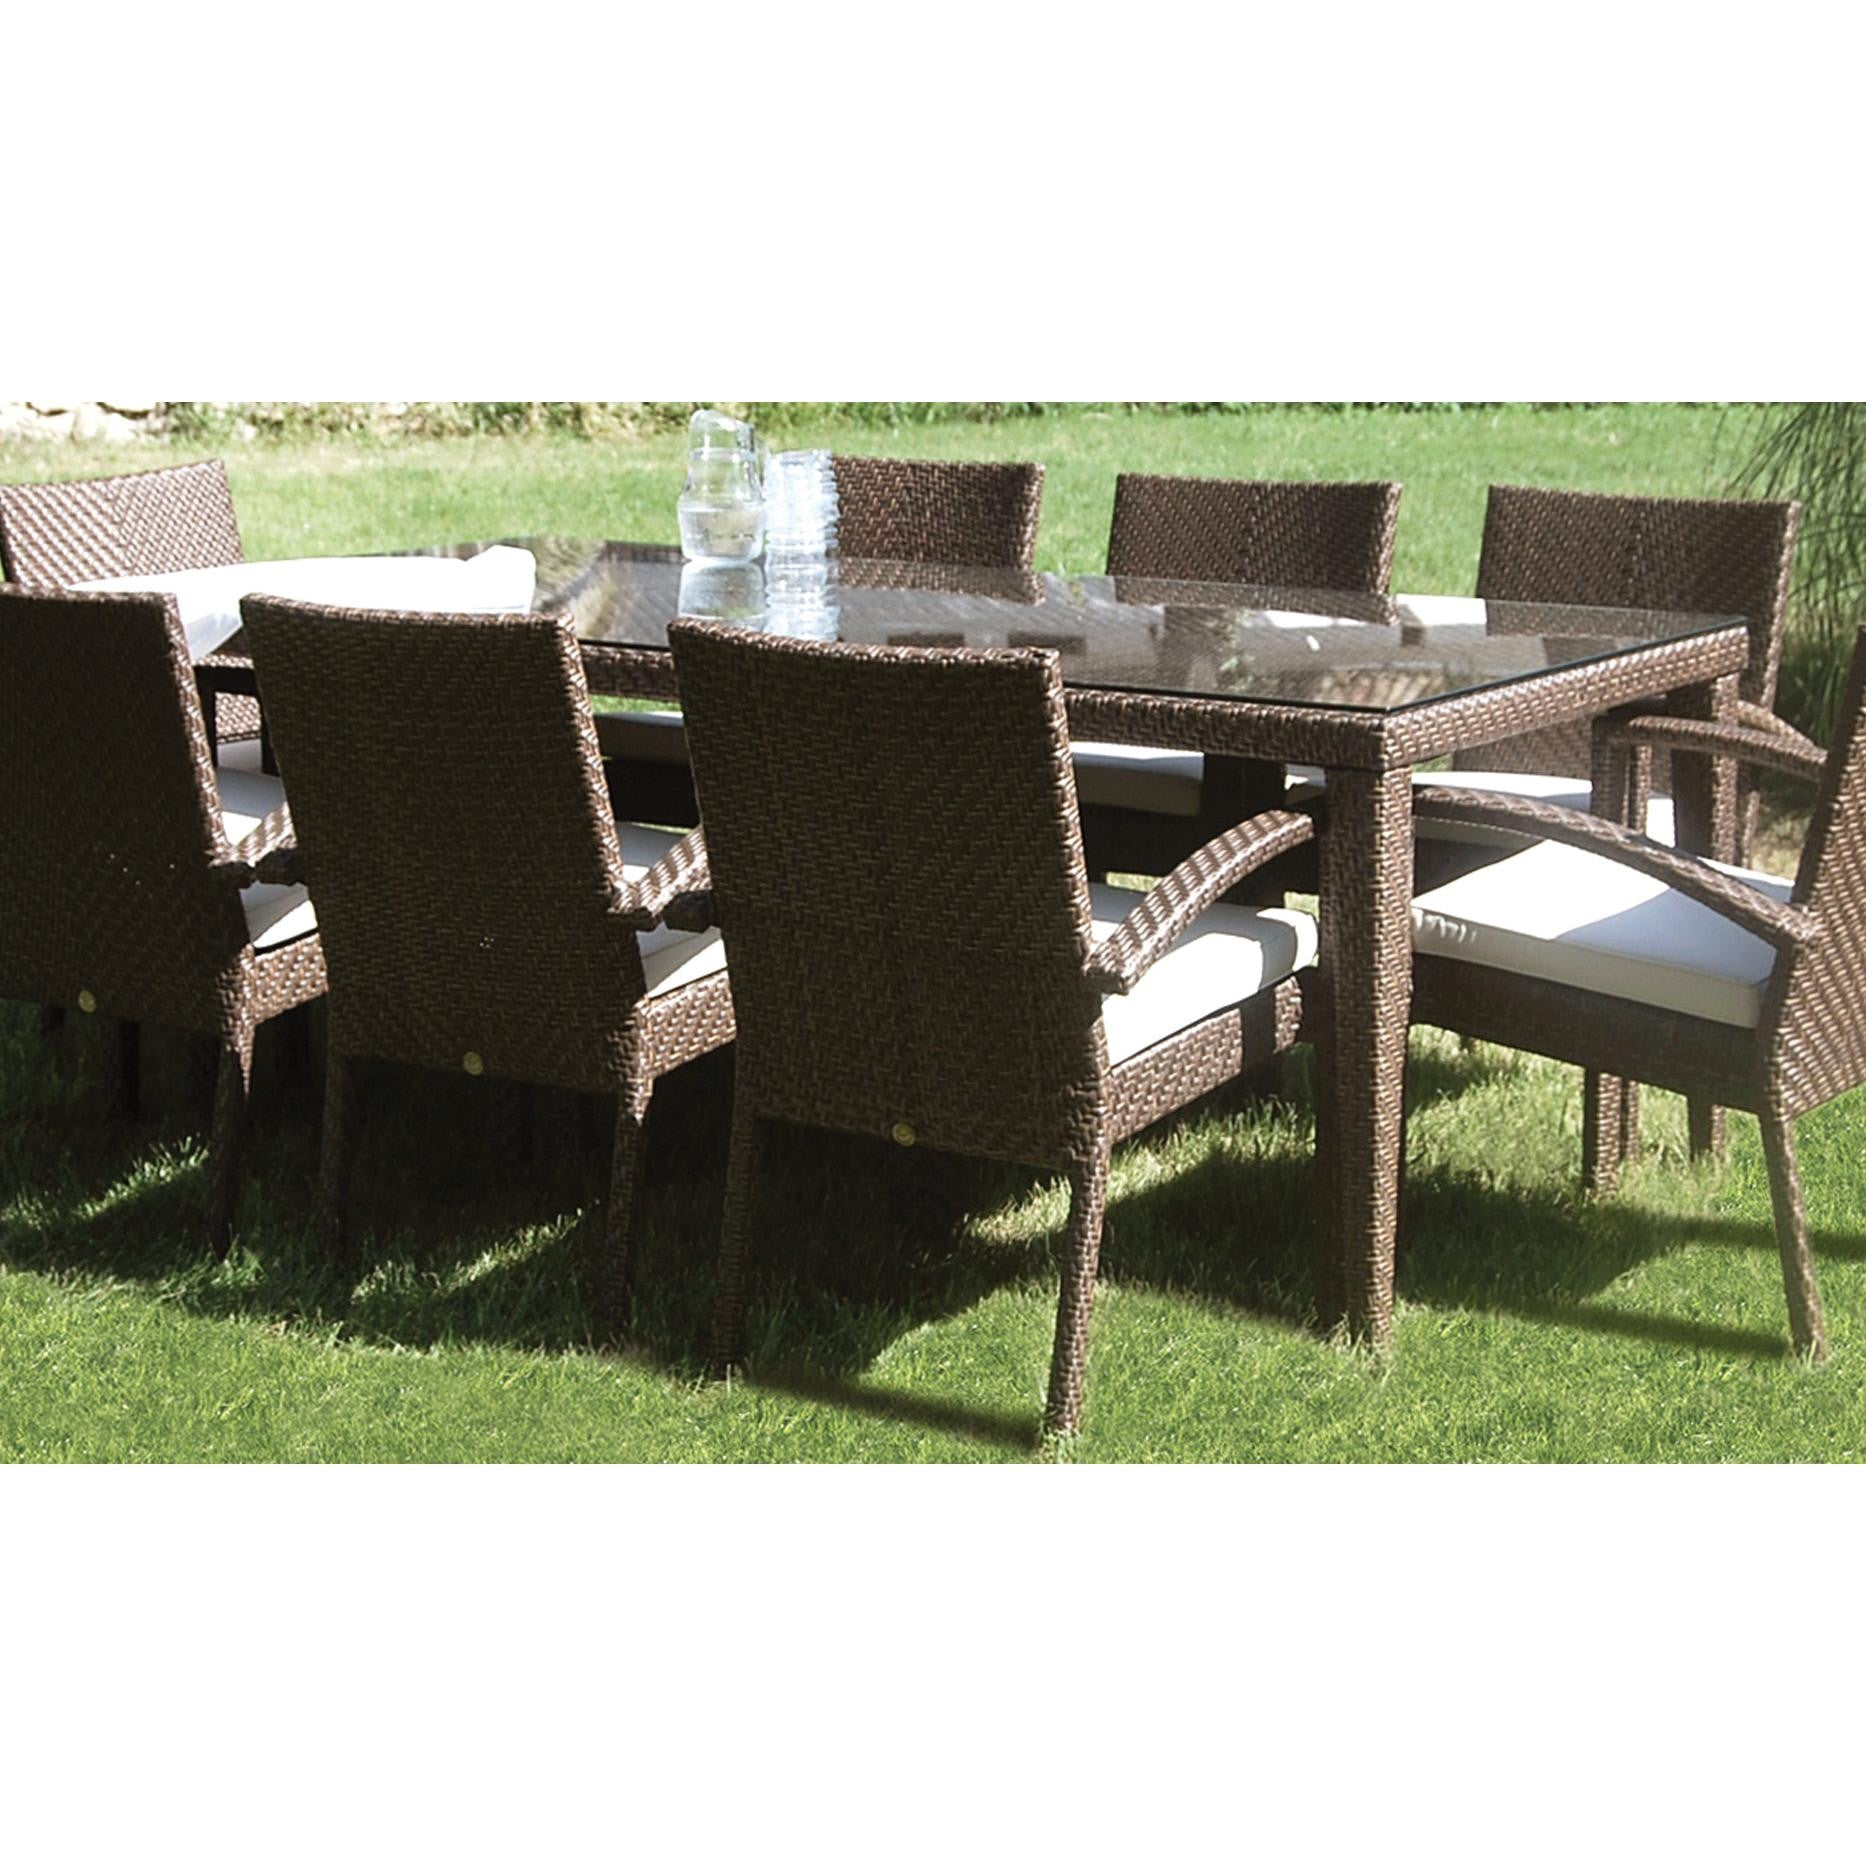 Hospitality Rattan Page 3 BetterPatio